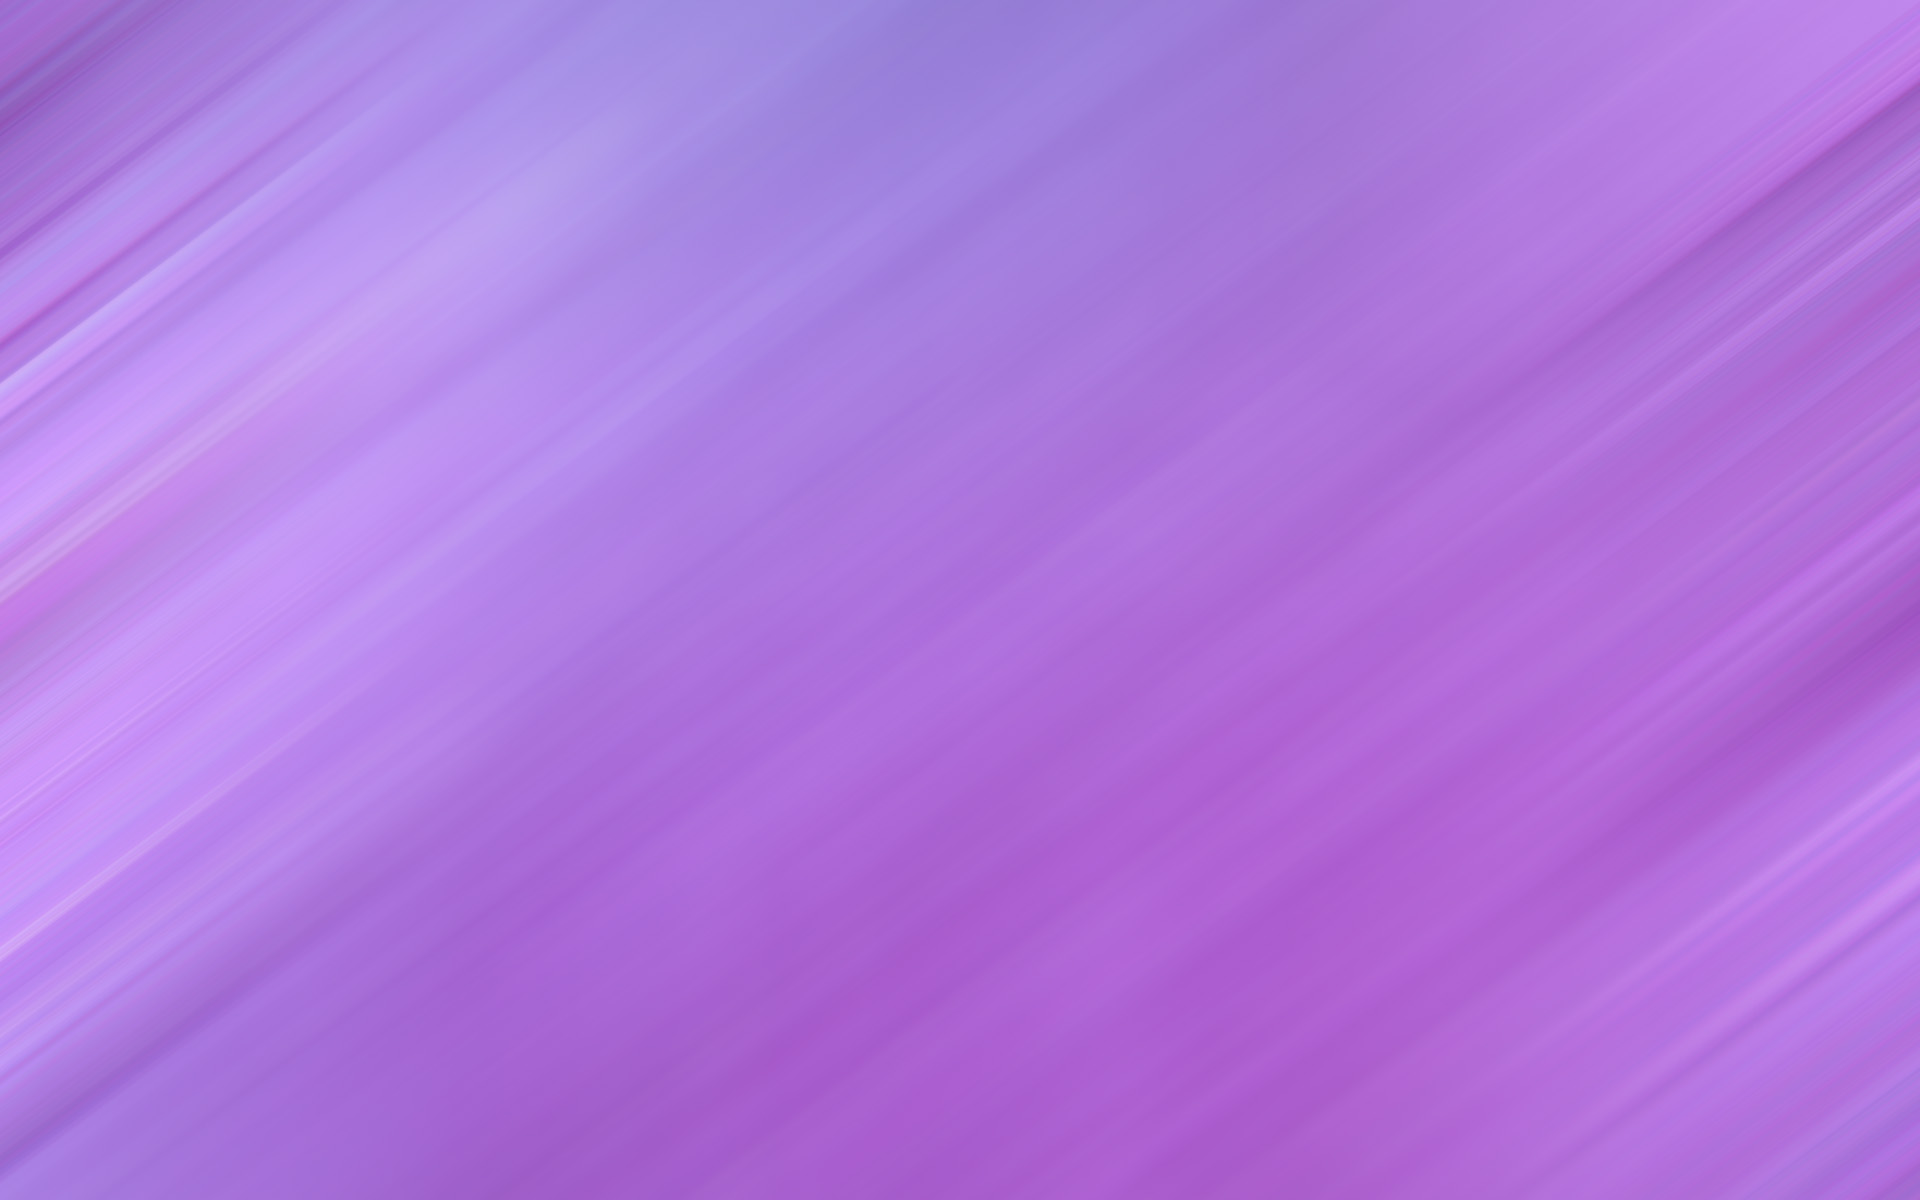 Light Purple Backgrounds - WallpaperSafari